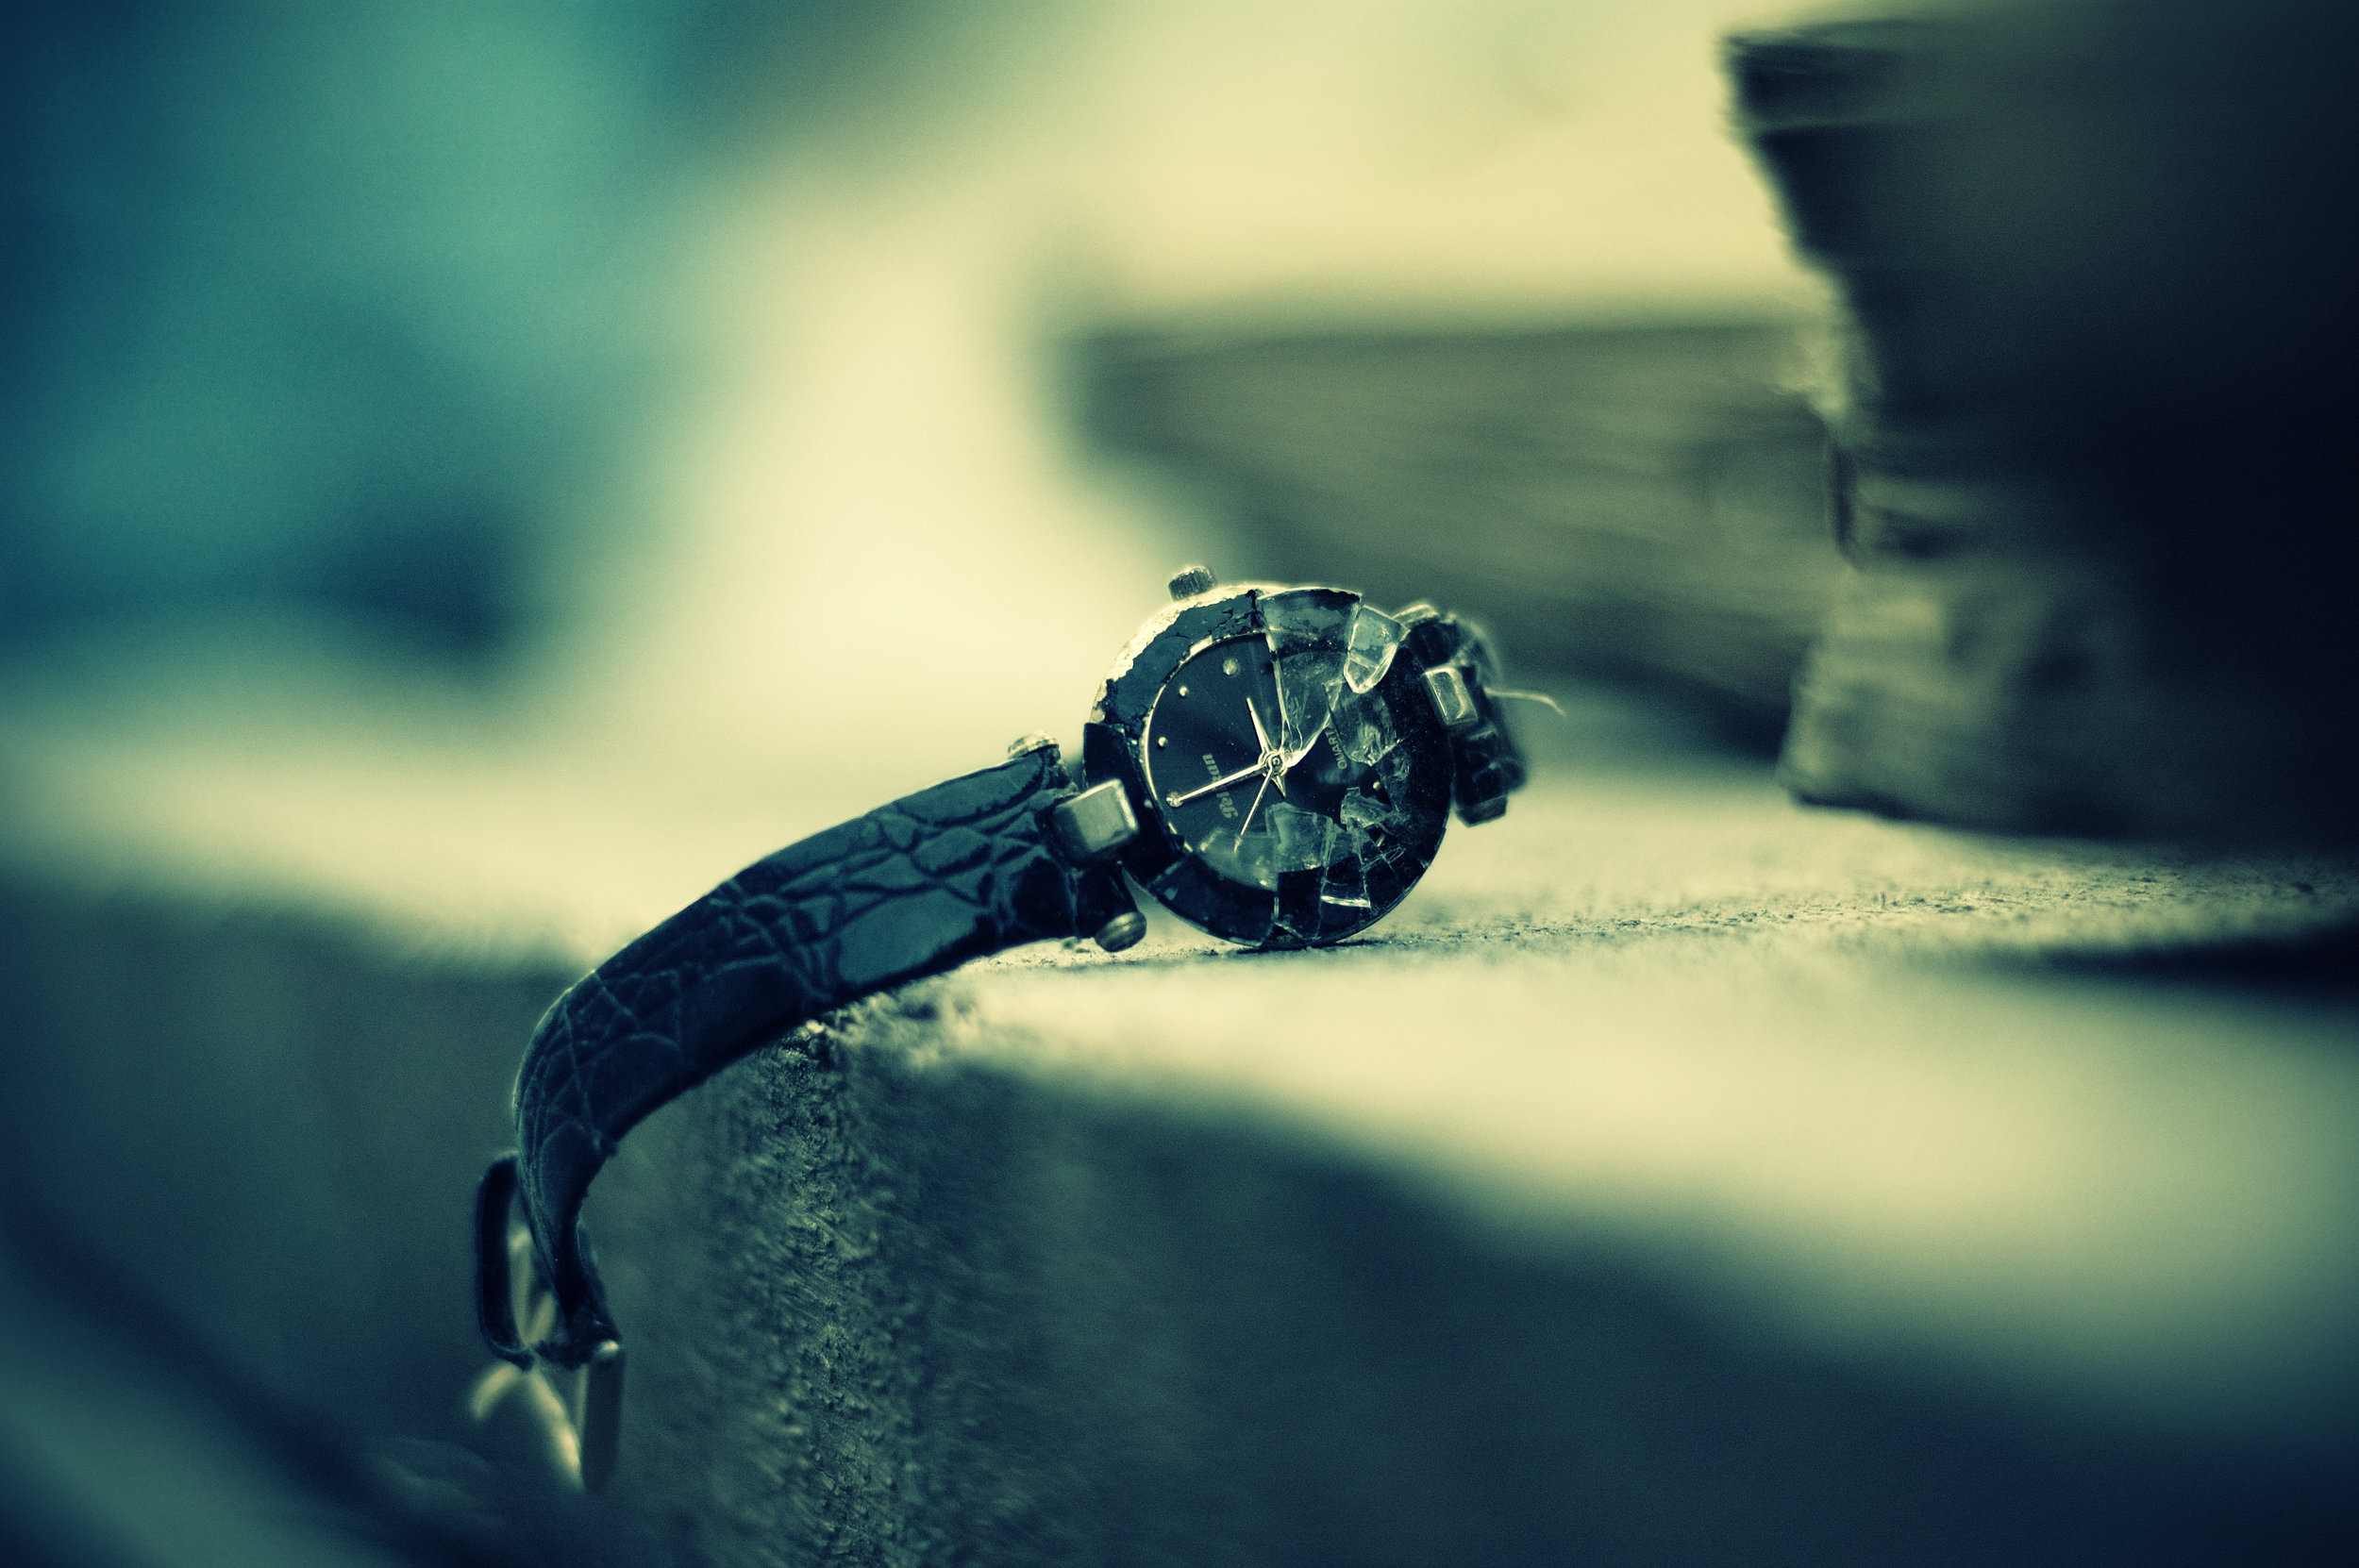 Broken watch that I found sitting on the side of a pull cart. Male' City, Maldives. Nikon D70s. (2008)